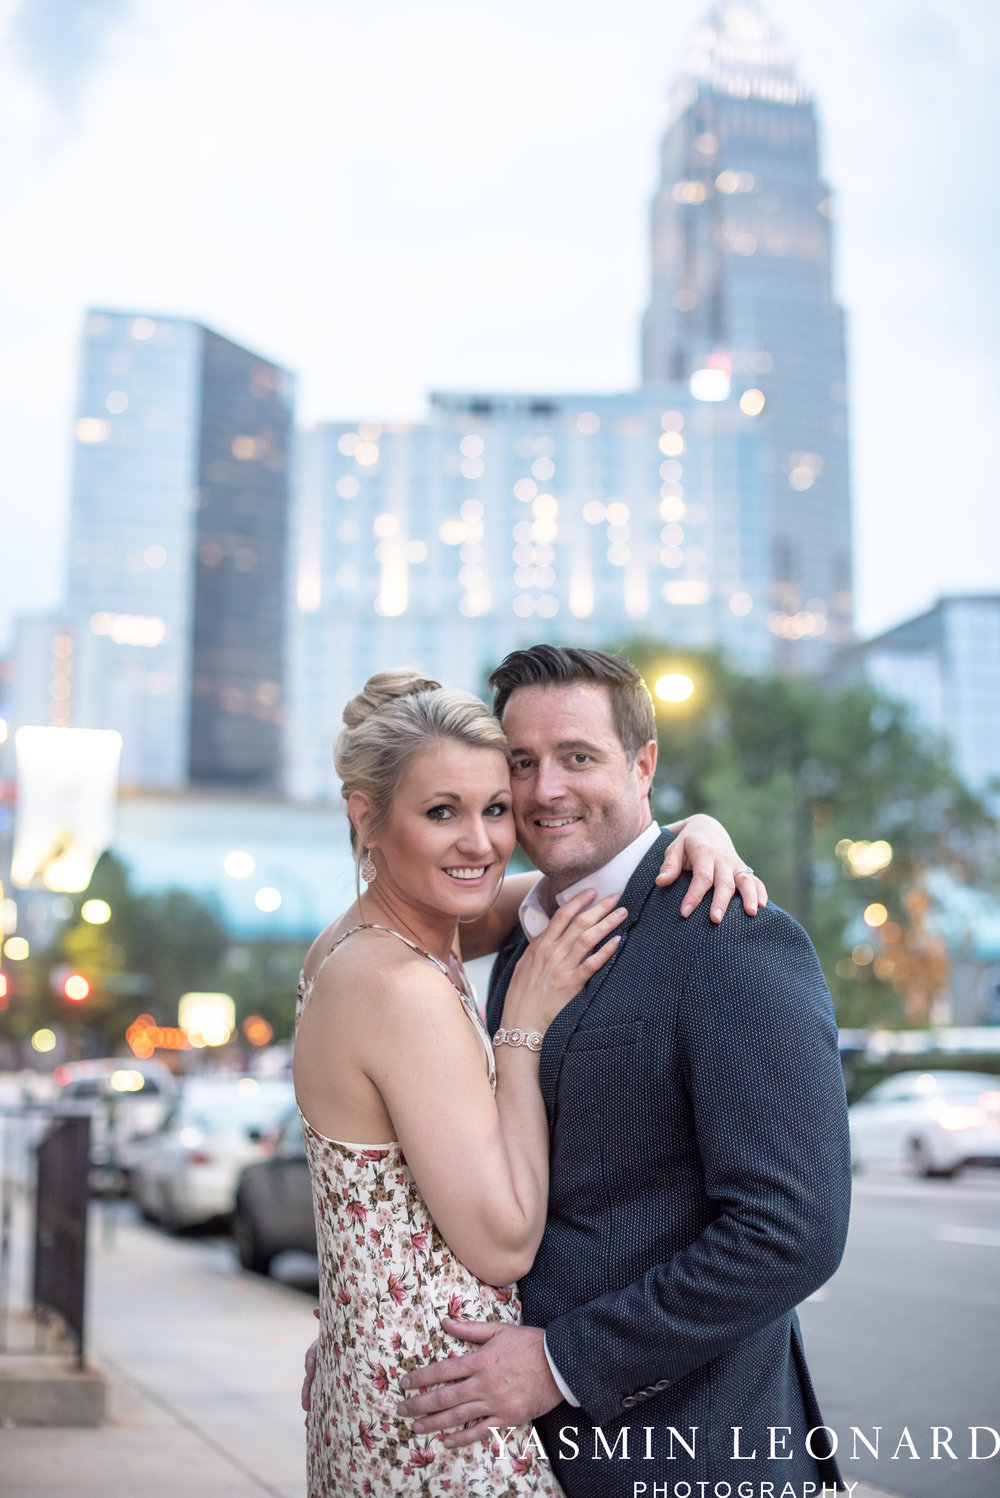 Charlotte - Fahrenheit - Fahrenheit Engagement Session - Charlotte Engagement Session - Downtown Charlotte Engagement Session-15.jpg